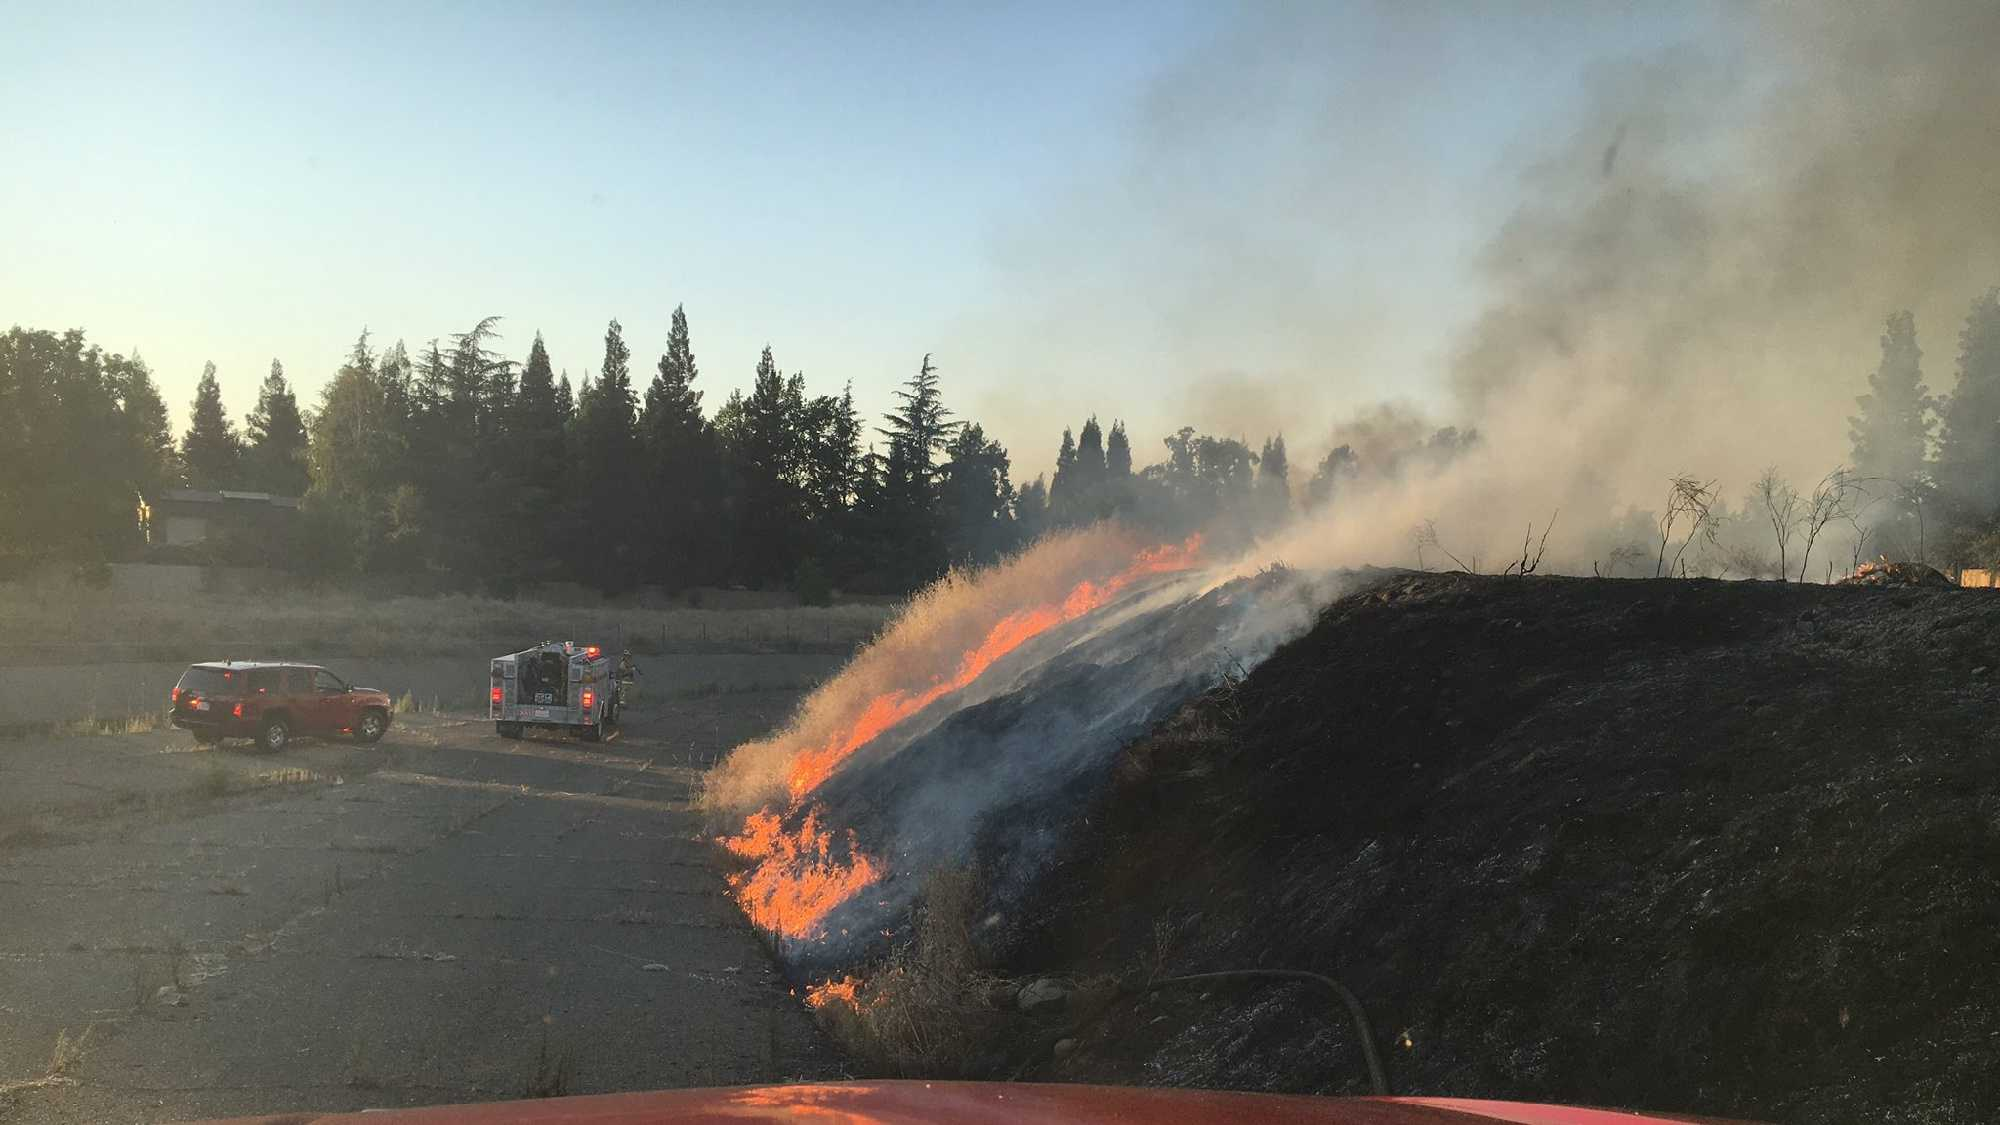 Two grass fires were set Tuesday along Highway 50, west of Hazel Avenue, in Rancho Cordova, the Metro Fire Department said.